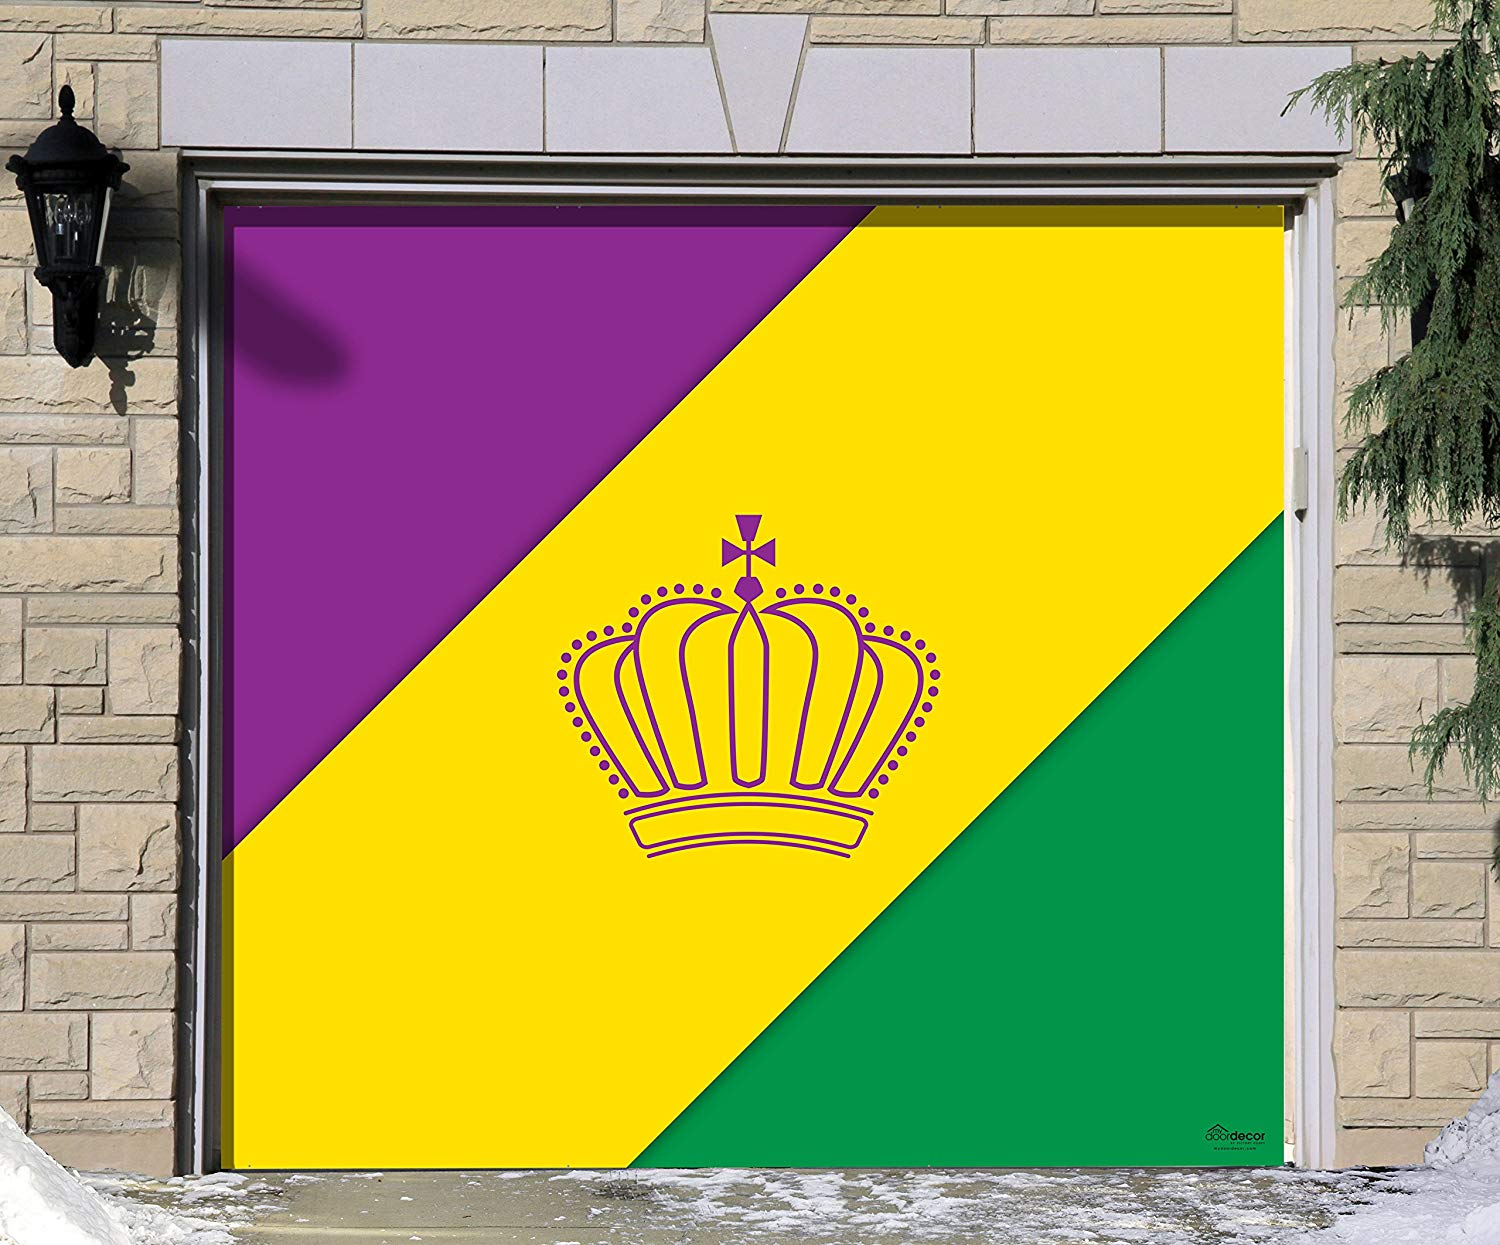 Victory Corps Outdoor Mardi Gras Decorations Garage Door Banner Cover Mural Décoration 7'x8' - Mardi Gras Diagonal Stripes - The Original Mardi Gras Supplies Holiday Garage Door Banner Decor